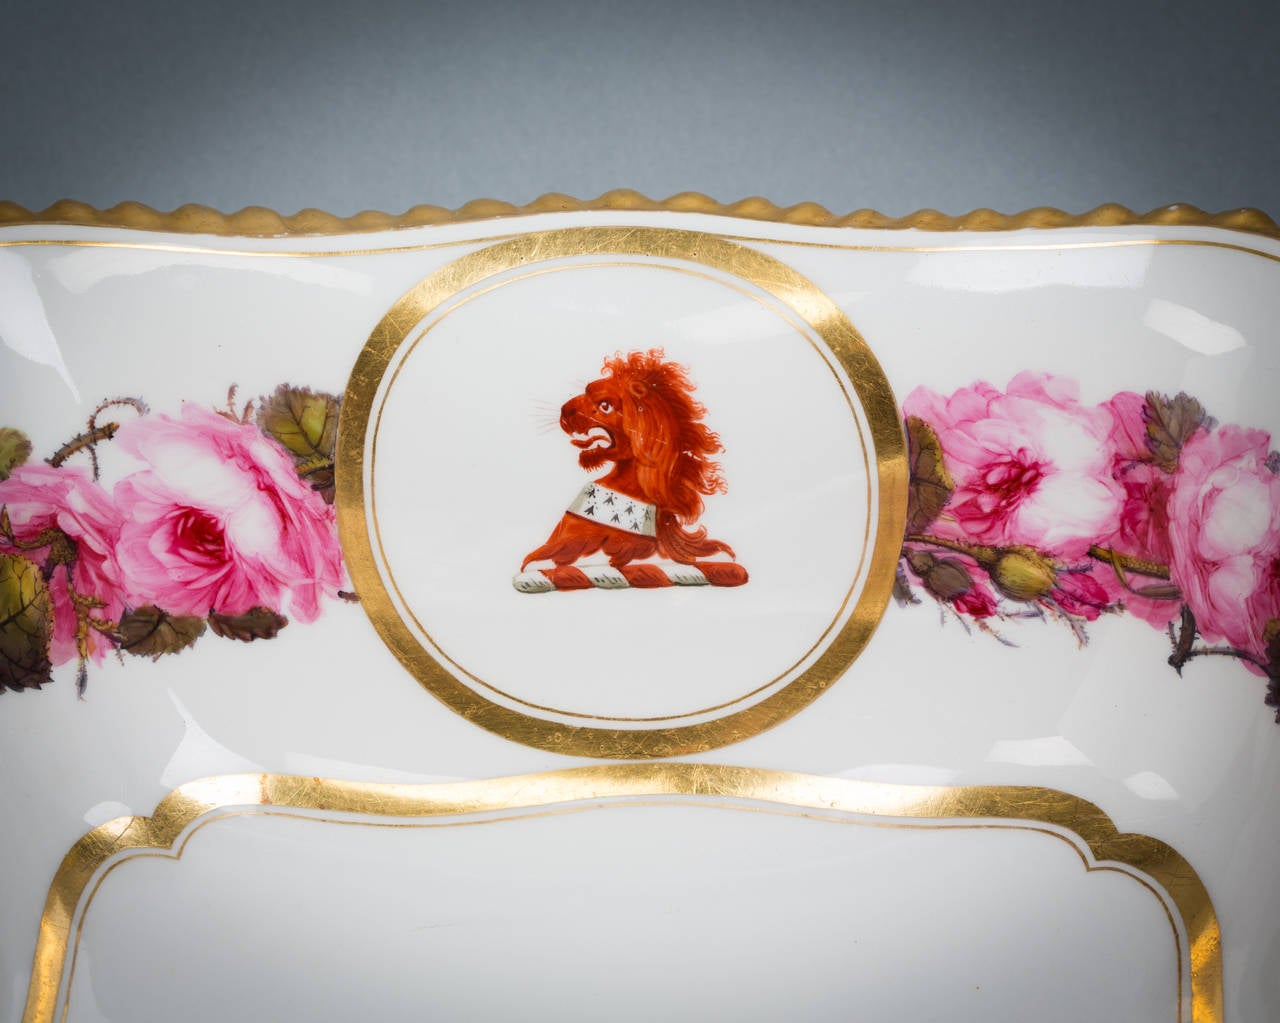 English Porcelain Bowl, Flight Barr and Barr, circa 1820 In Good Condition For Sale In New York, NY